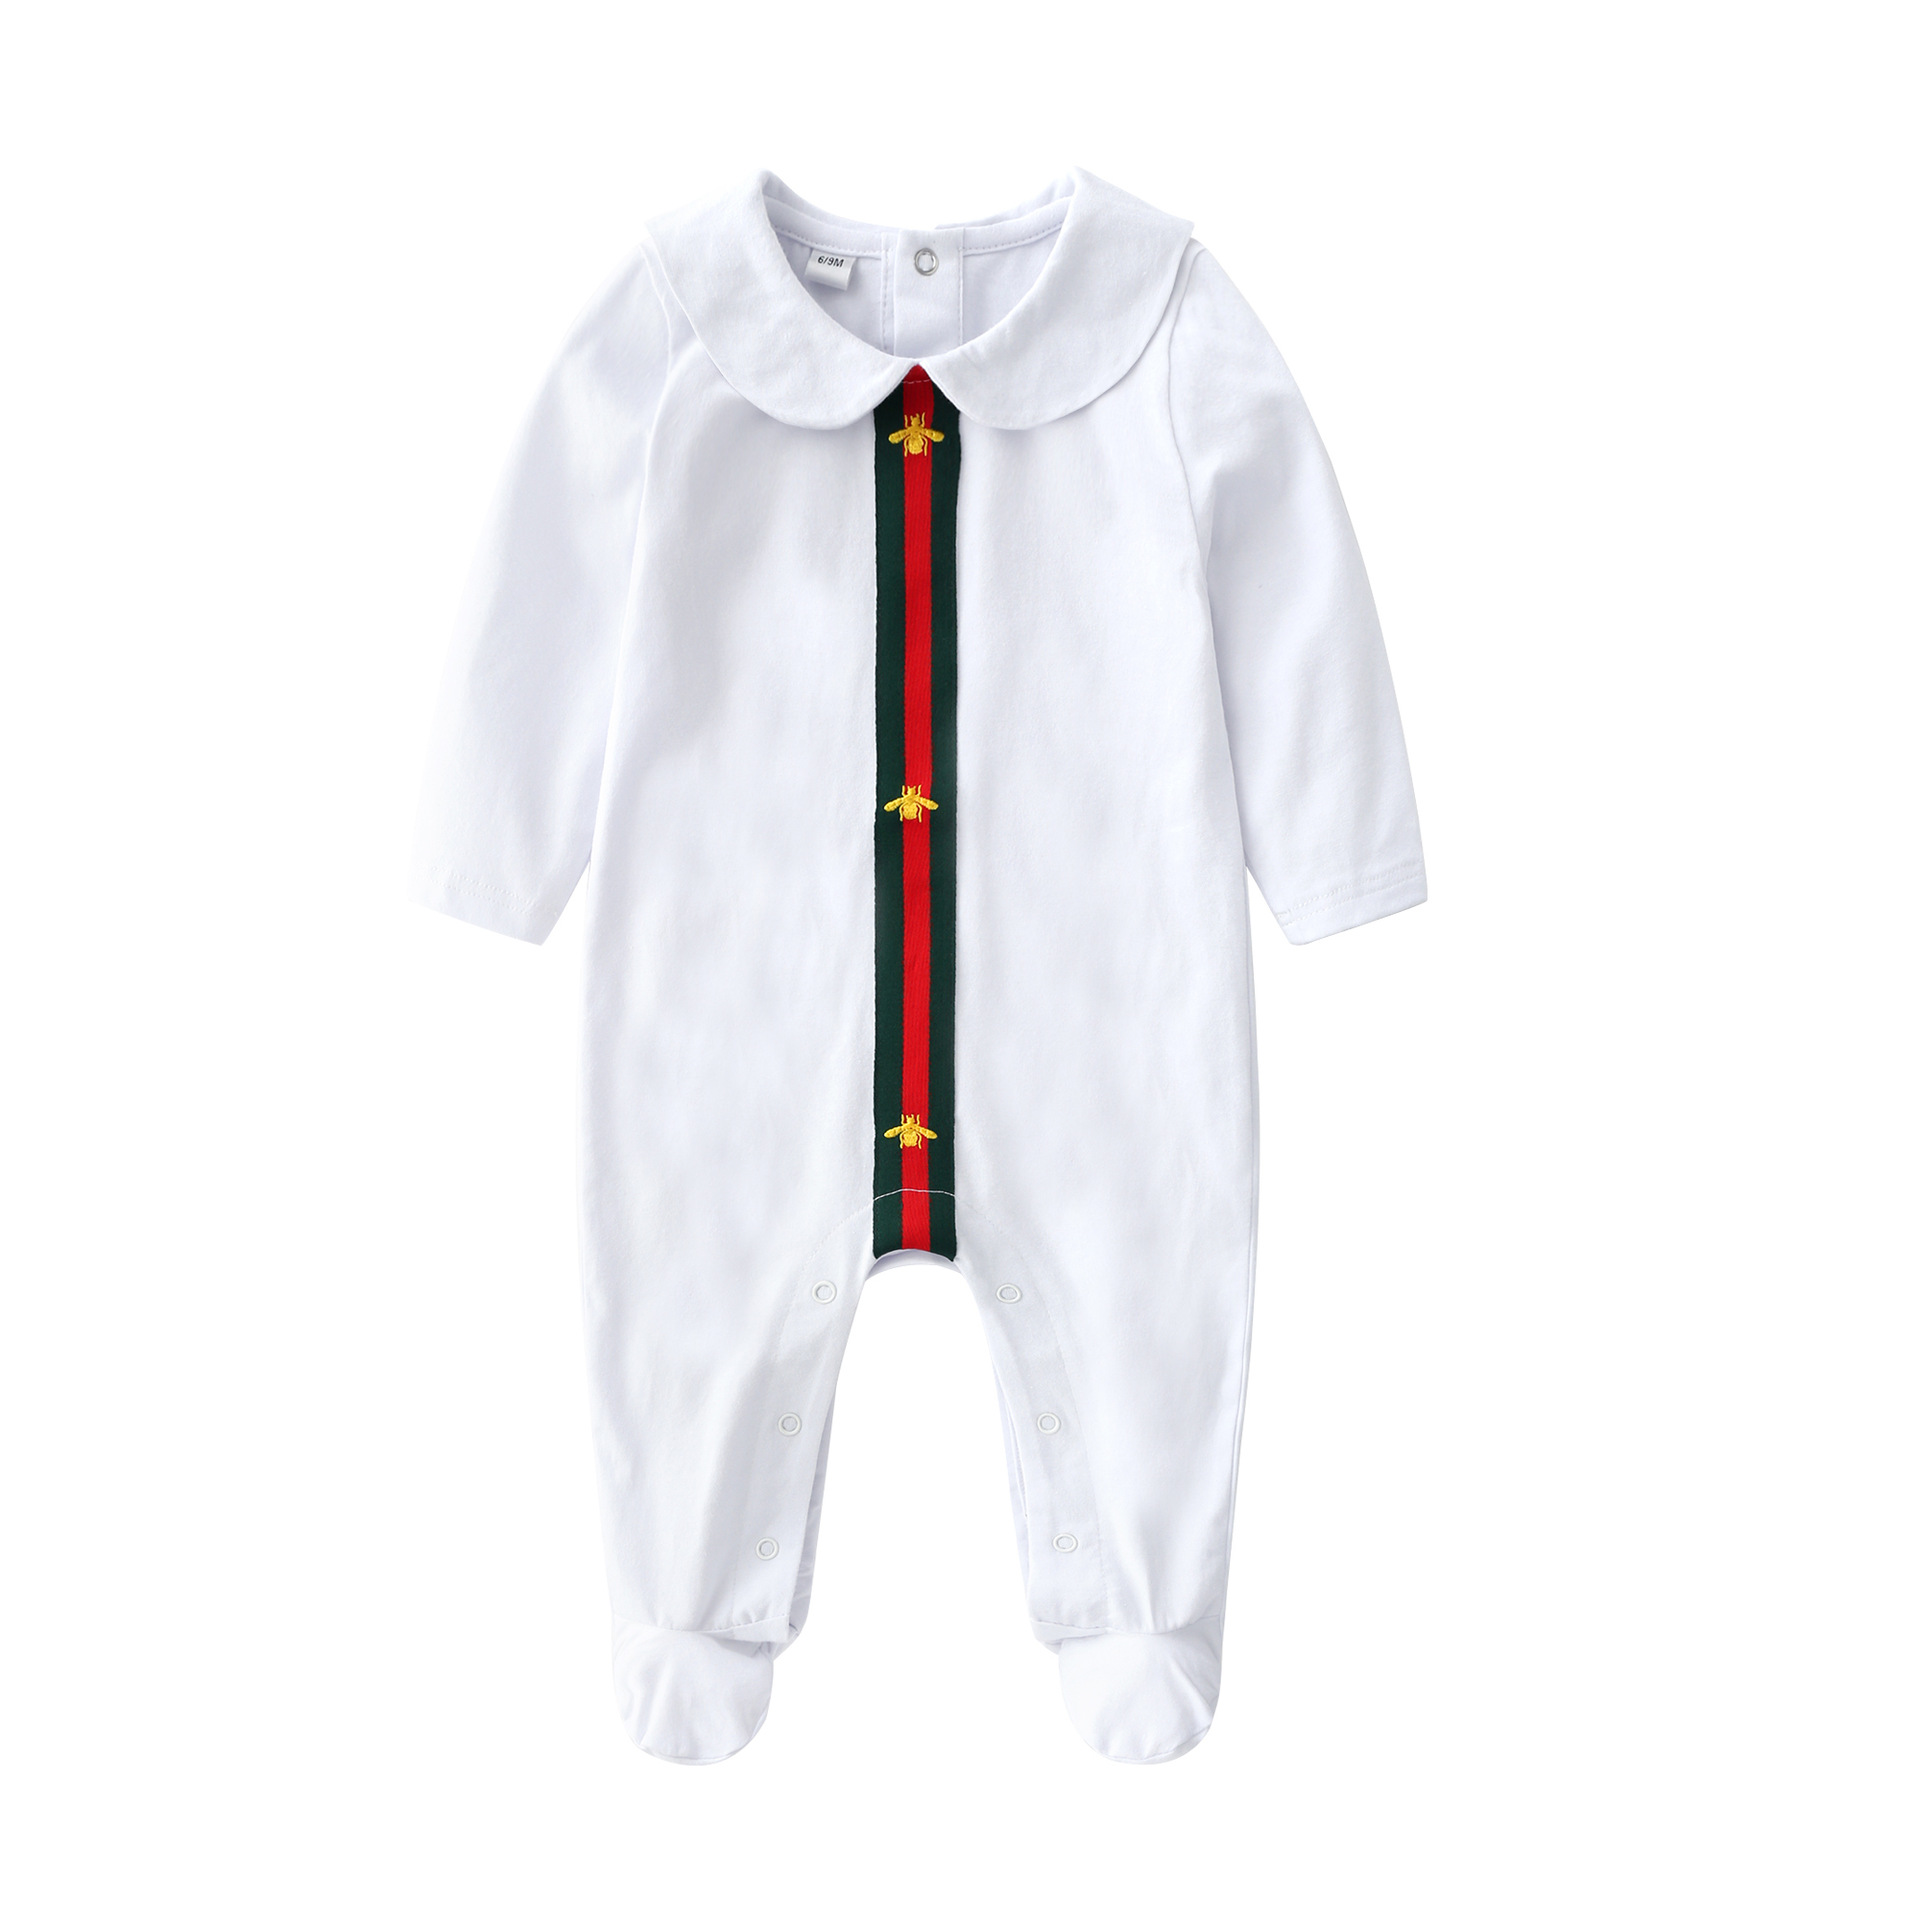 New Style Bees-Baby Clothes Onesie Cotton Baby Crawling Clothes BABY'S Long-sleeved Rompers A Generation Of Fat